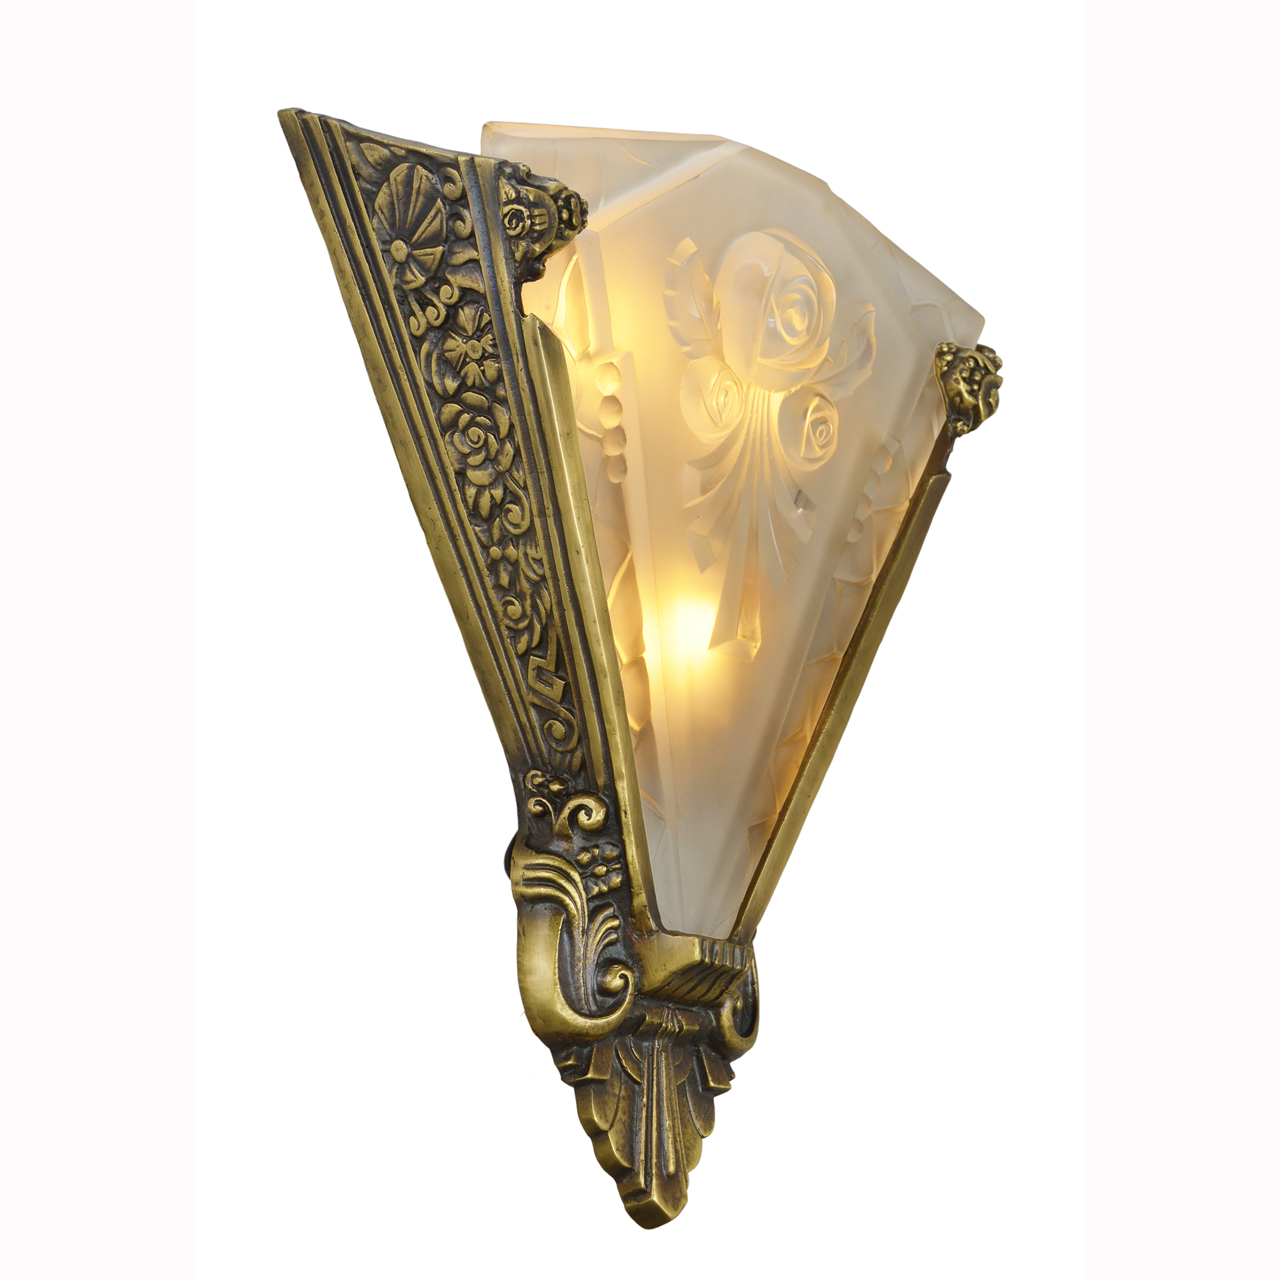 Images Of Wall Sconces Pair Of Large Wall Sconces Lighting With Antique French